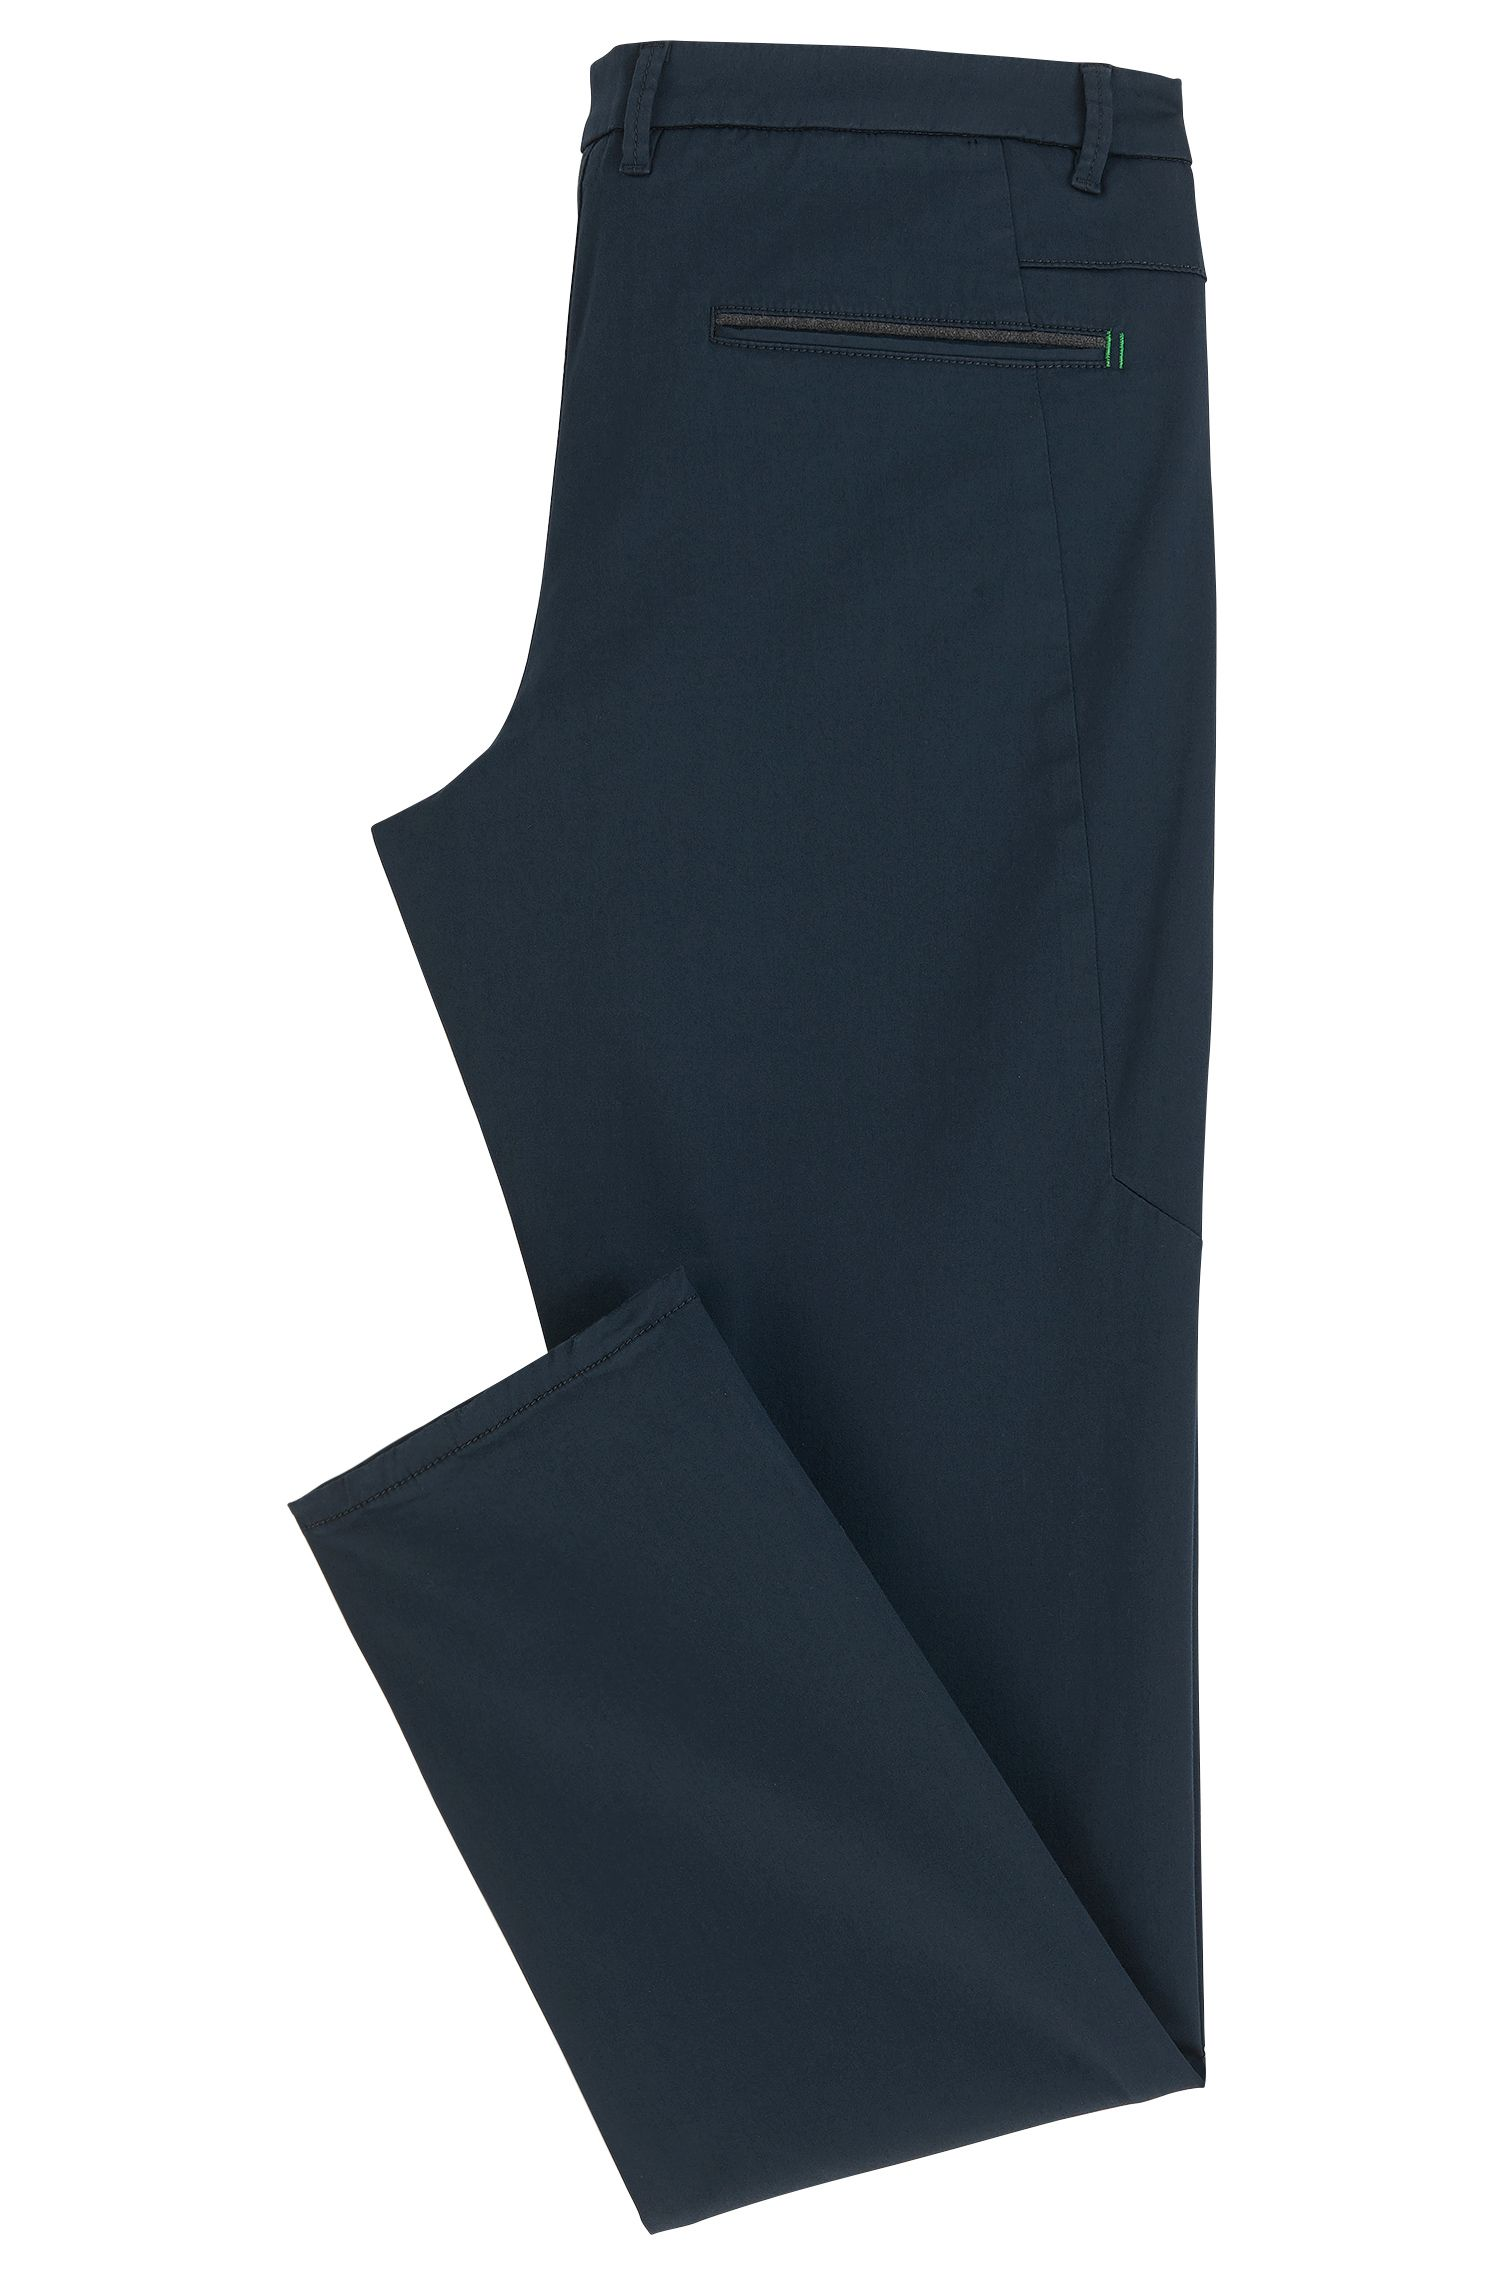 Regular-Fit Chino aus elastischem Baumwoll-Mix mit Satin-Finish, Dunkelblau